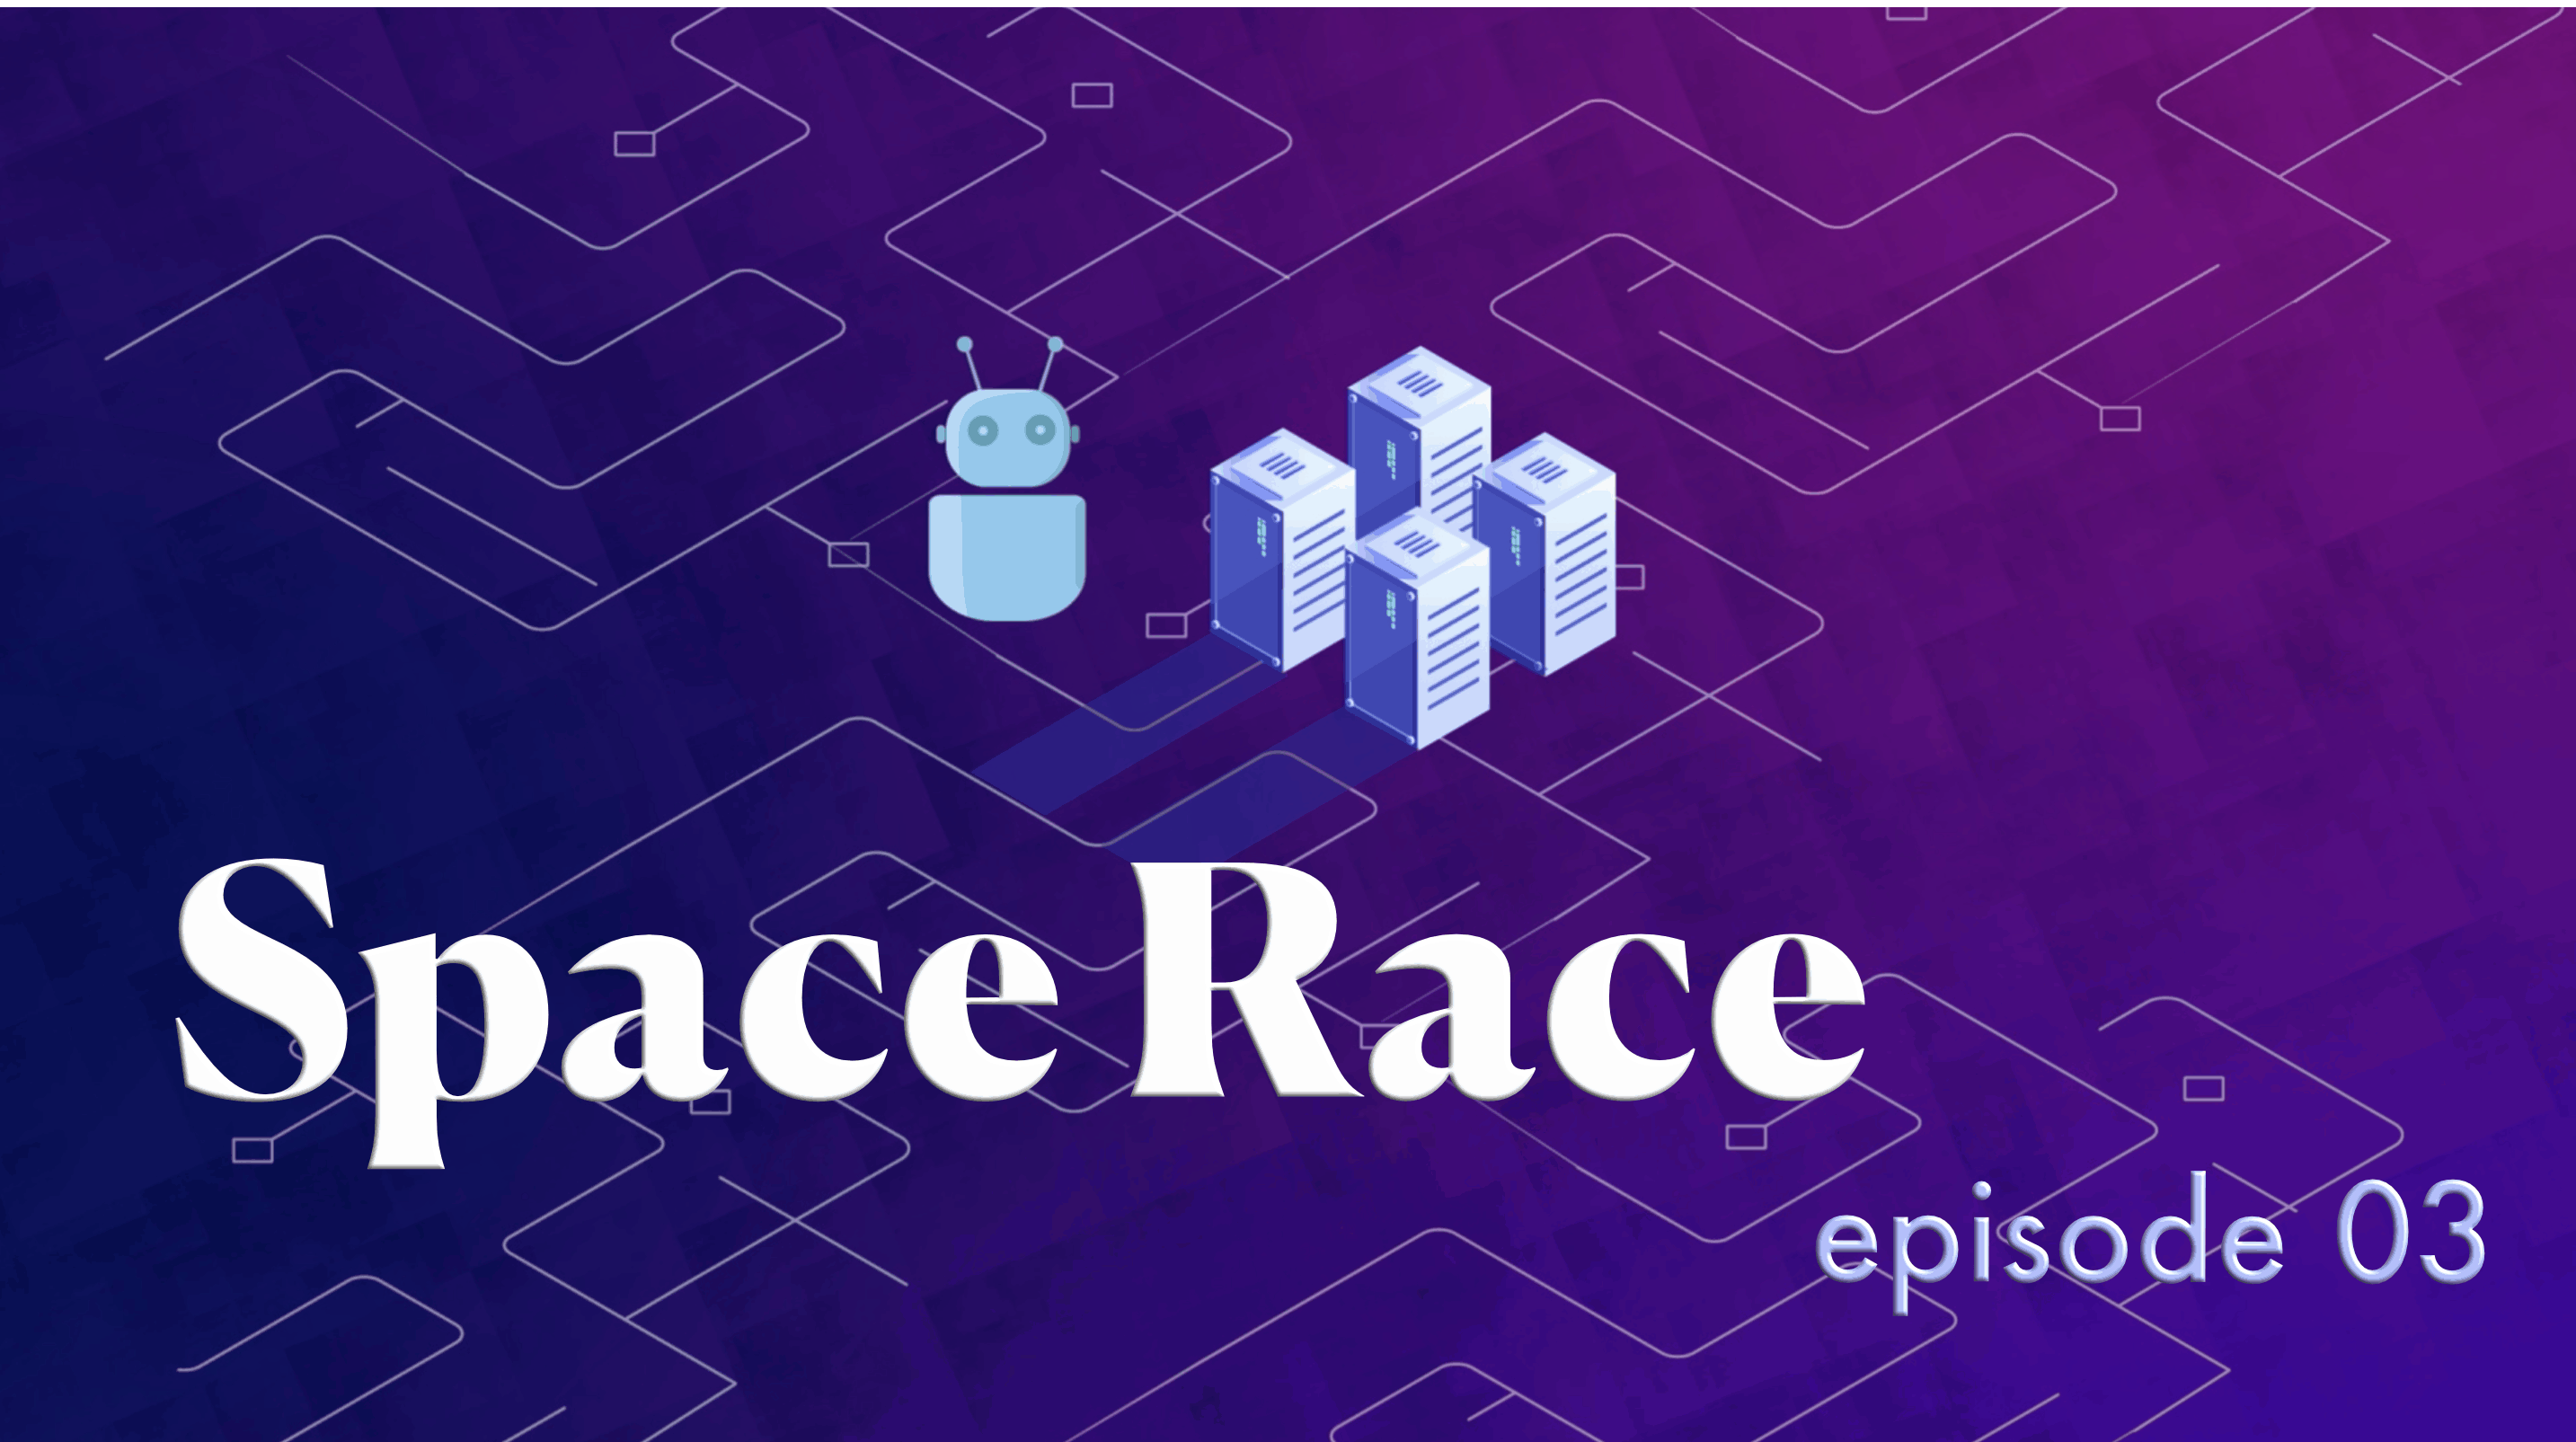 Space Race ep 3